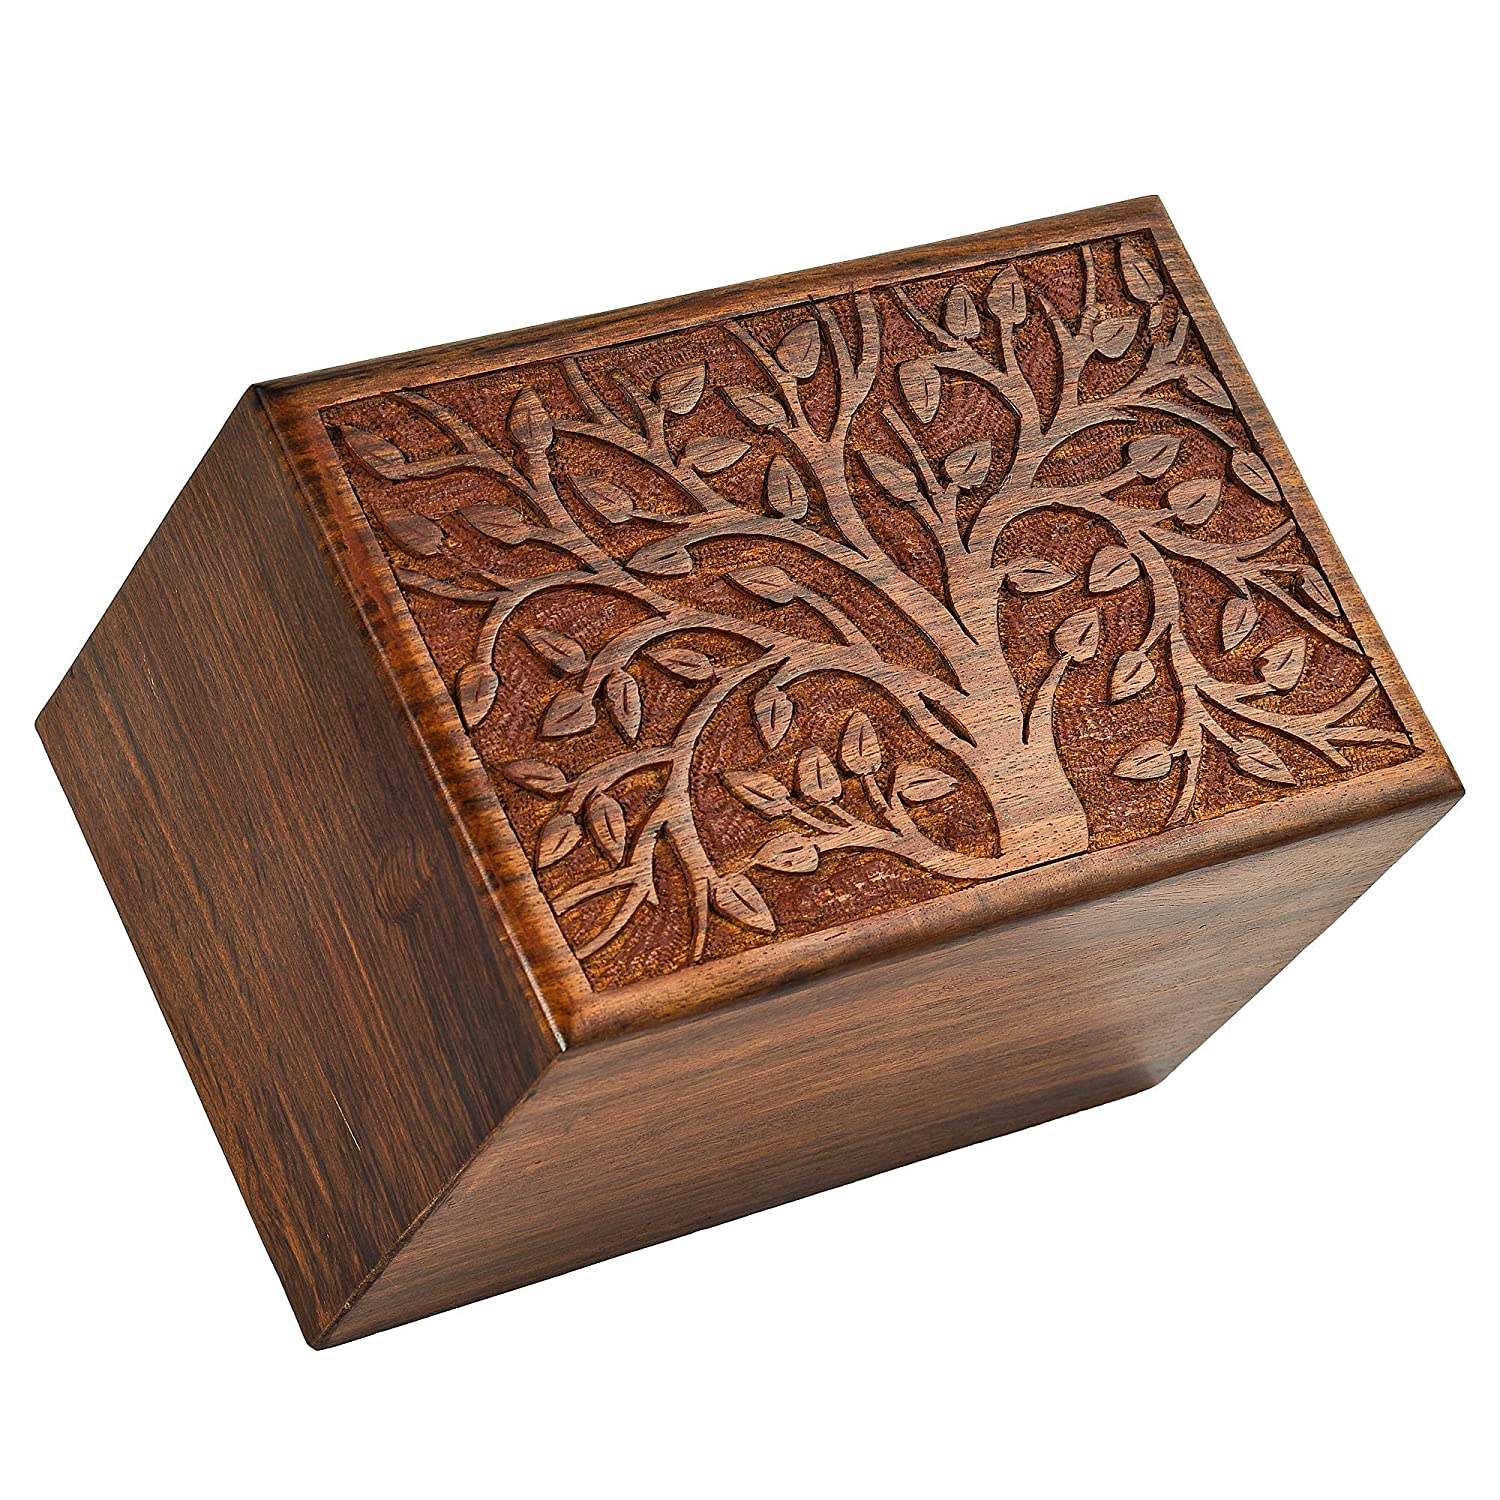 Weight 9 x 6 x 6 Inh LxBxH Fine Craft India Tree Printed Beautifully Handmade /& Handcrafted Tree of Life Engrcaving Wooden Urns for Human Ashes Size 1060 Gram